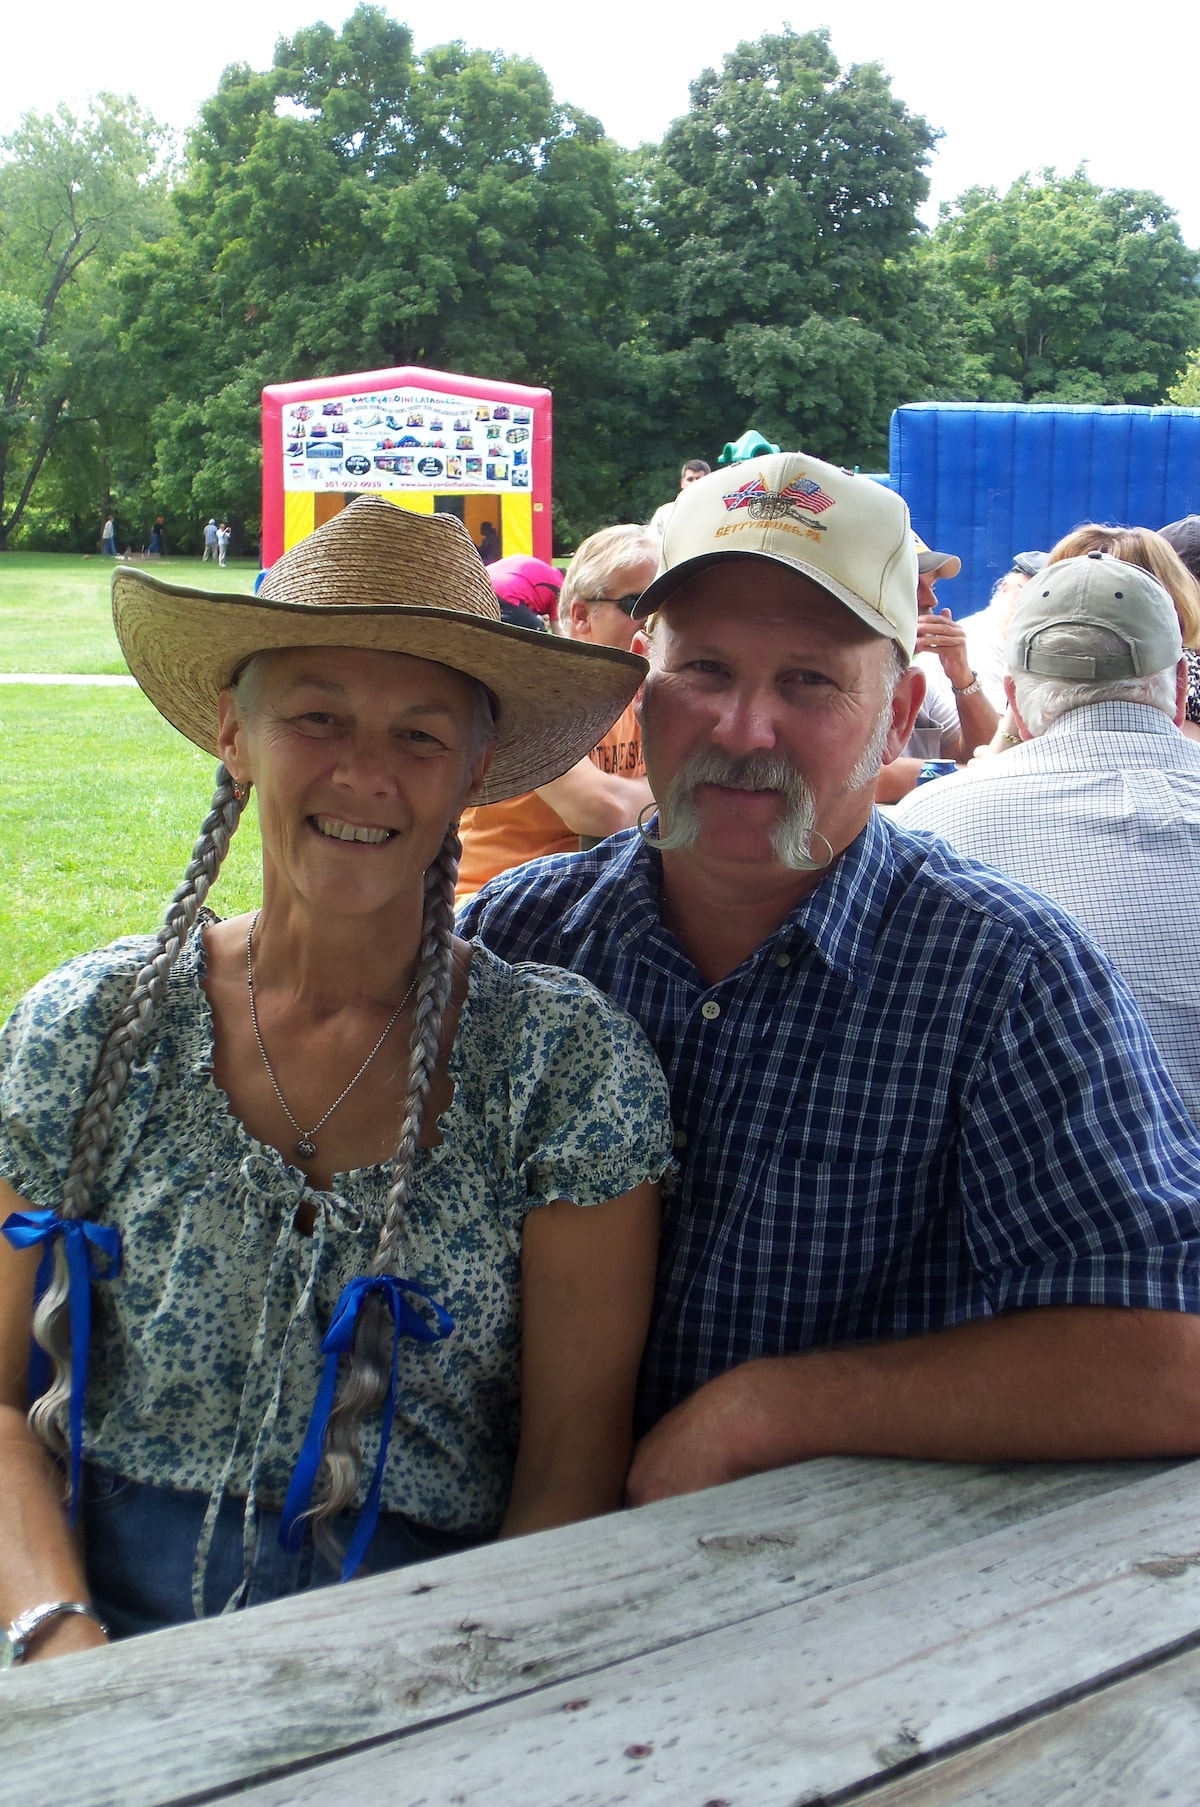 GARSON And Jackie from Gettysburg